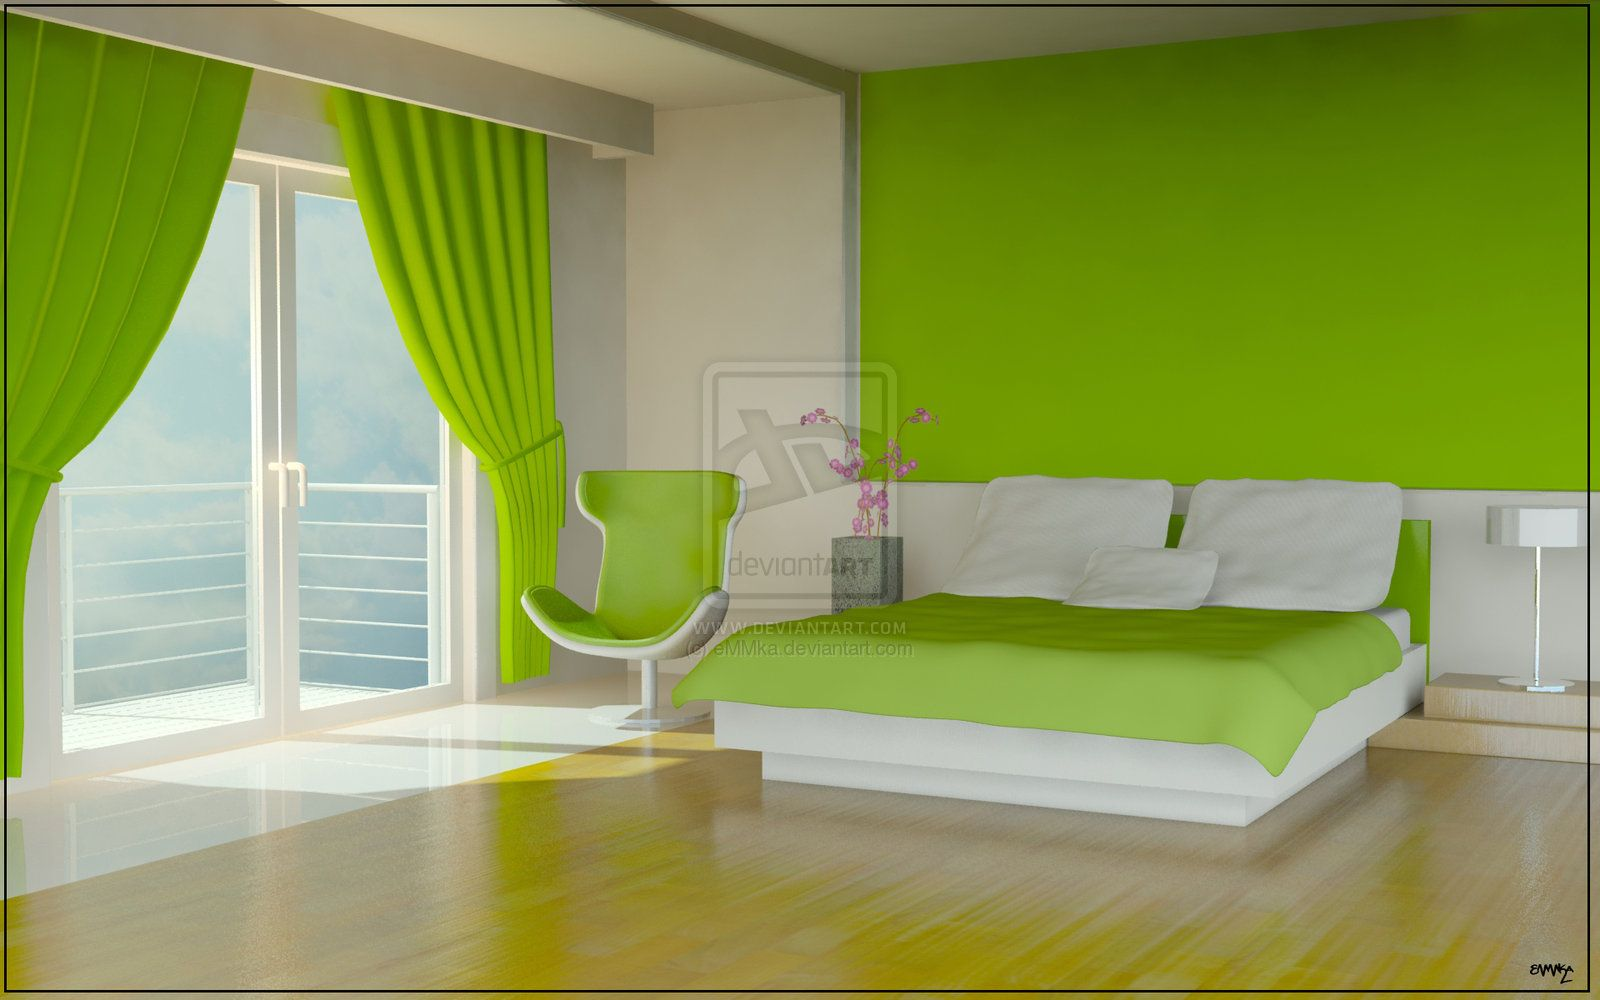 Bedroom colors green and white - Cool Bedroom Color Design With Green Color Stylendesigns Com